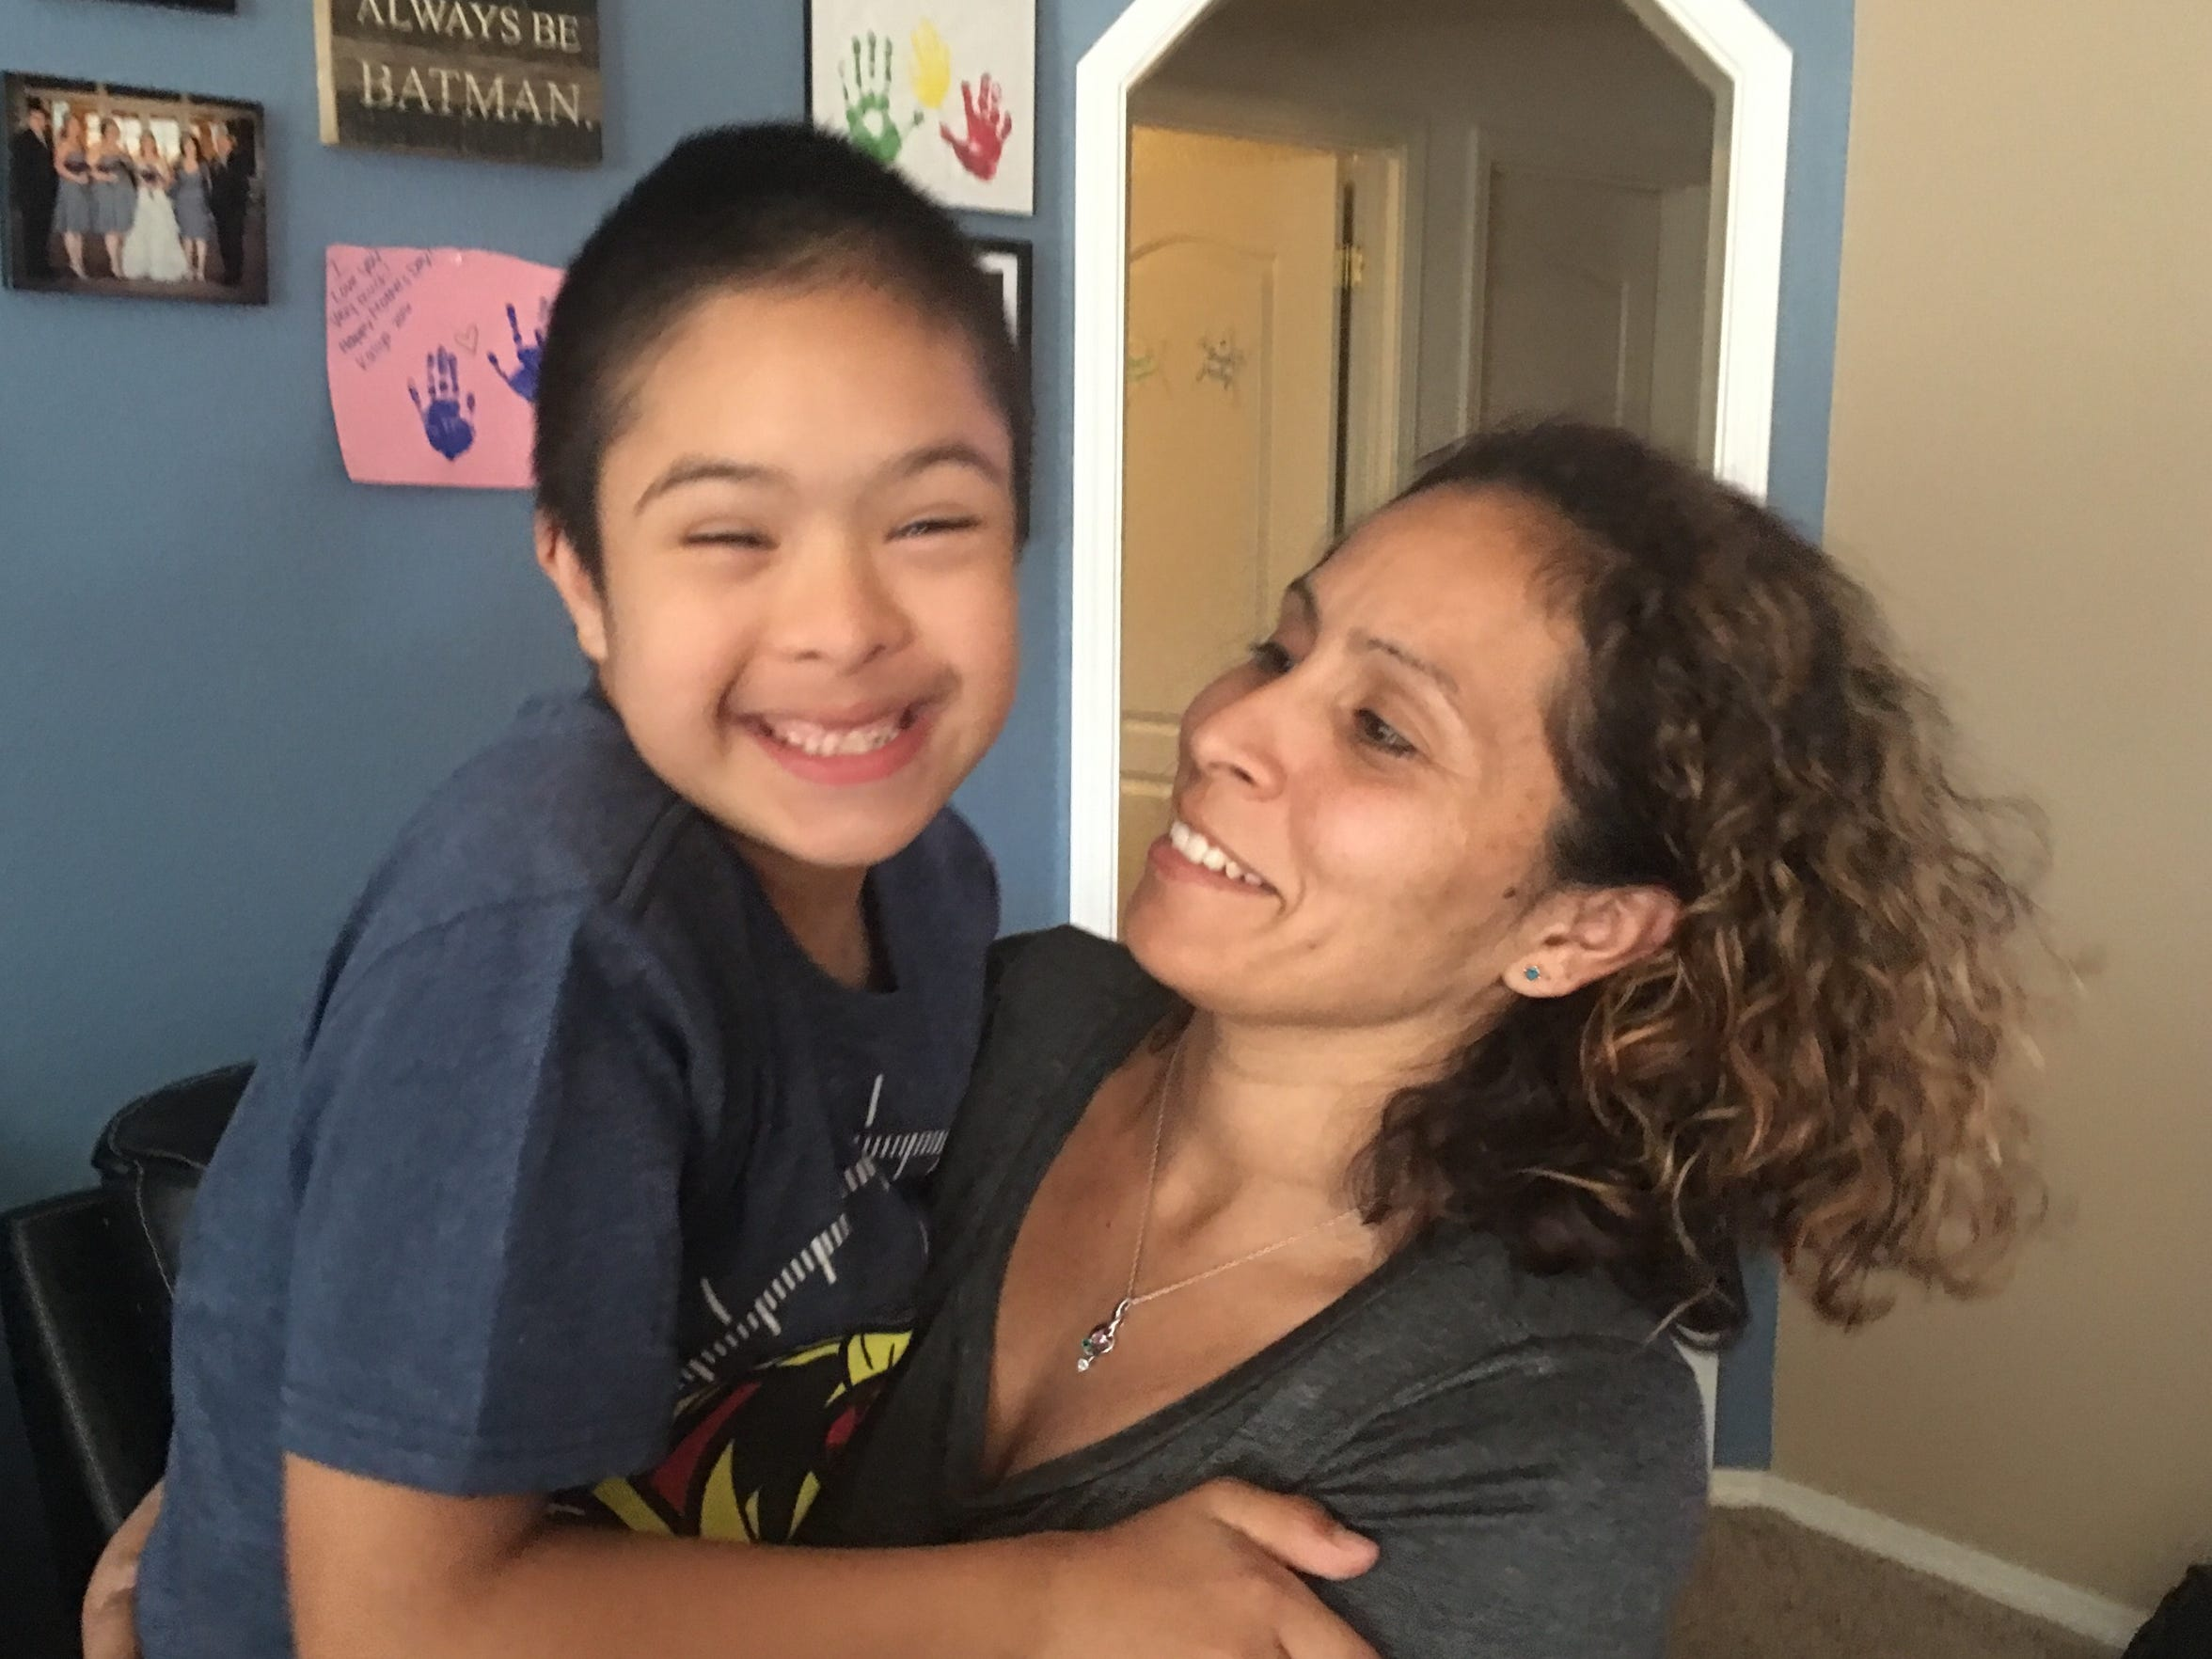 Donovan Gutierrez, 10, smiles with his mom Katherine